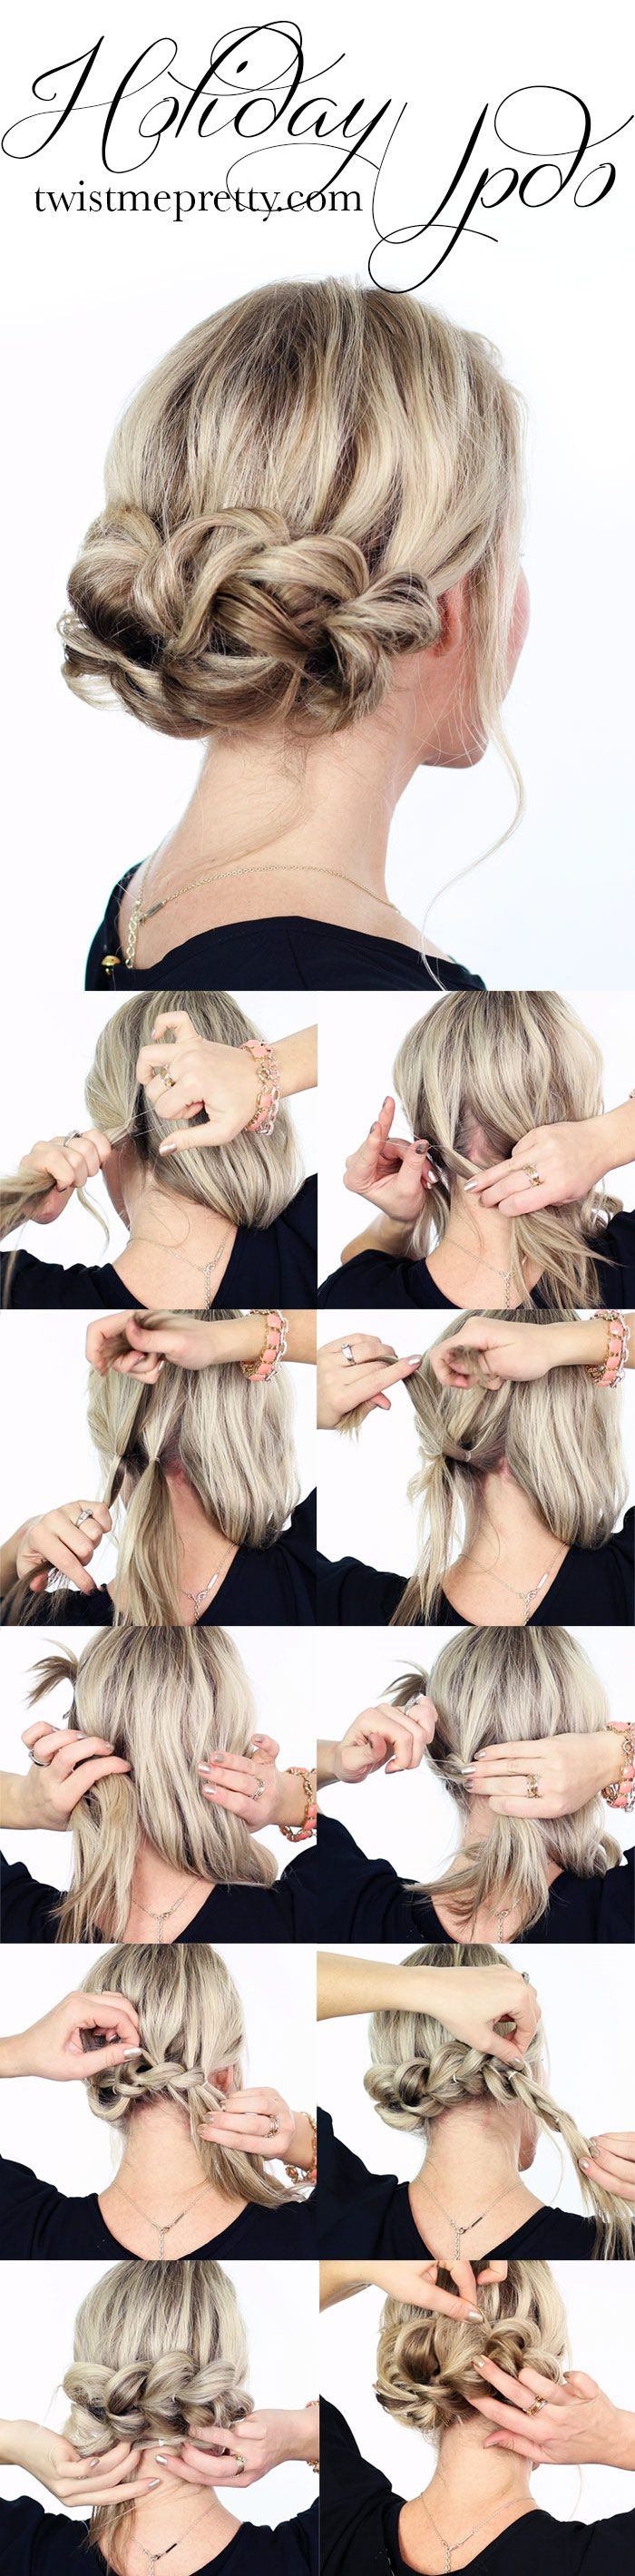 87 best HOLIDAY HAIR images on Pinterest